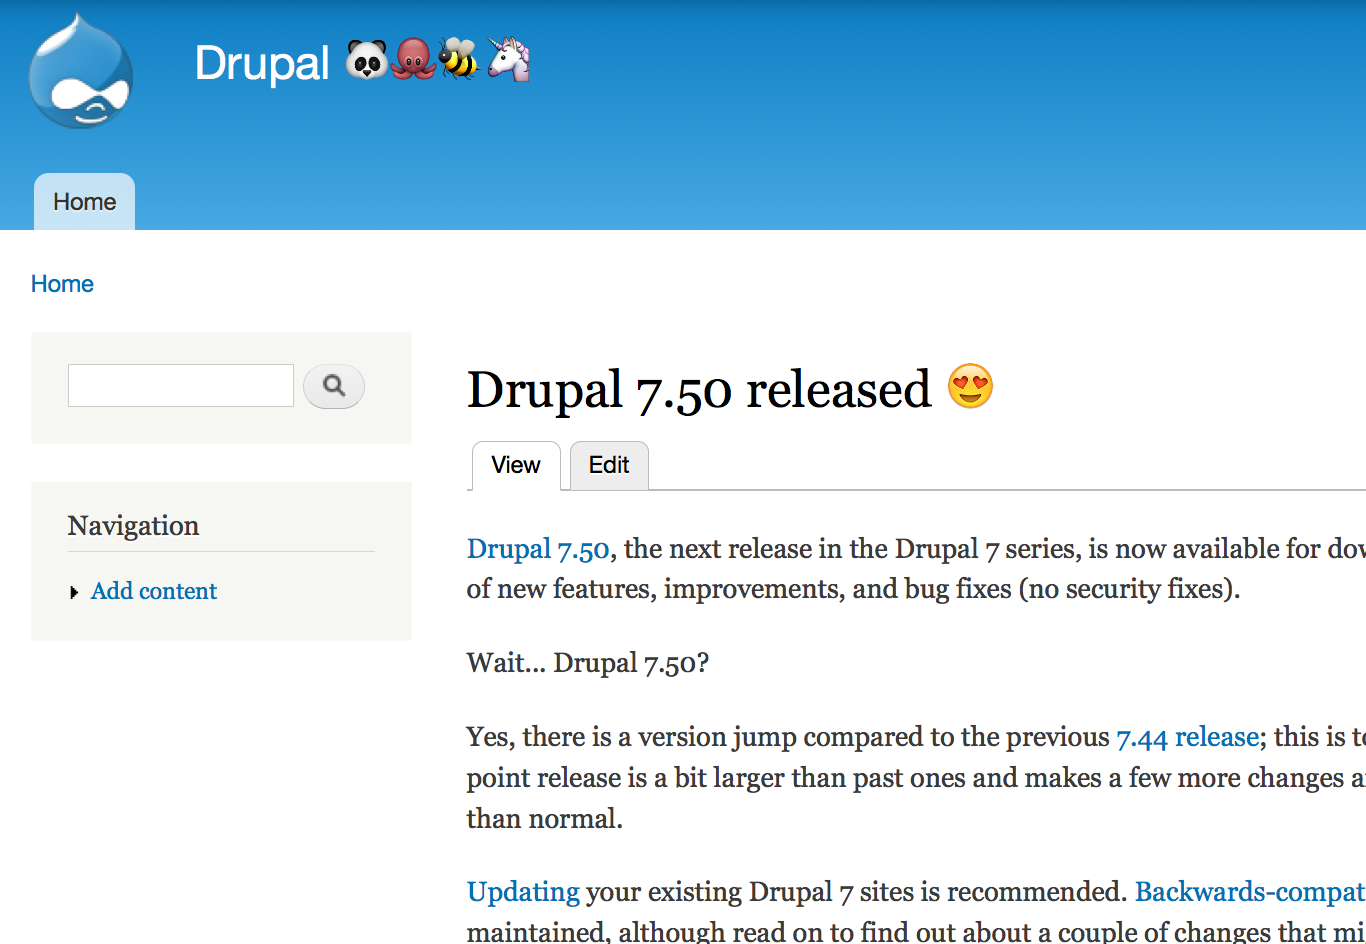 Drupal - Emojis On A Drupal Site